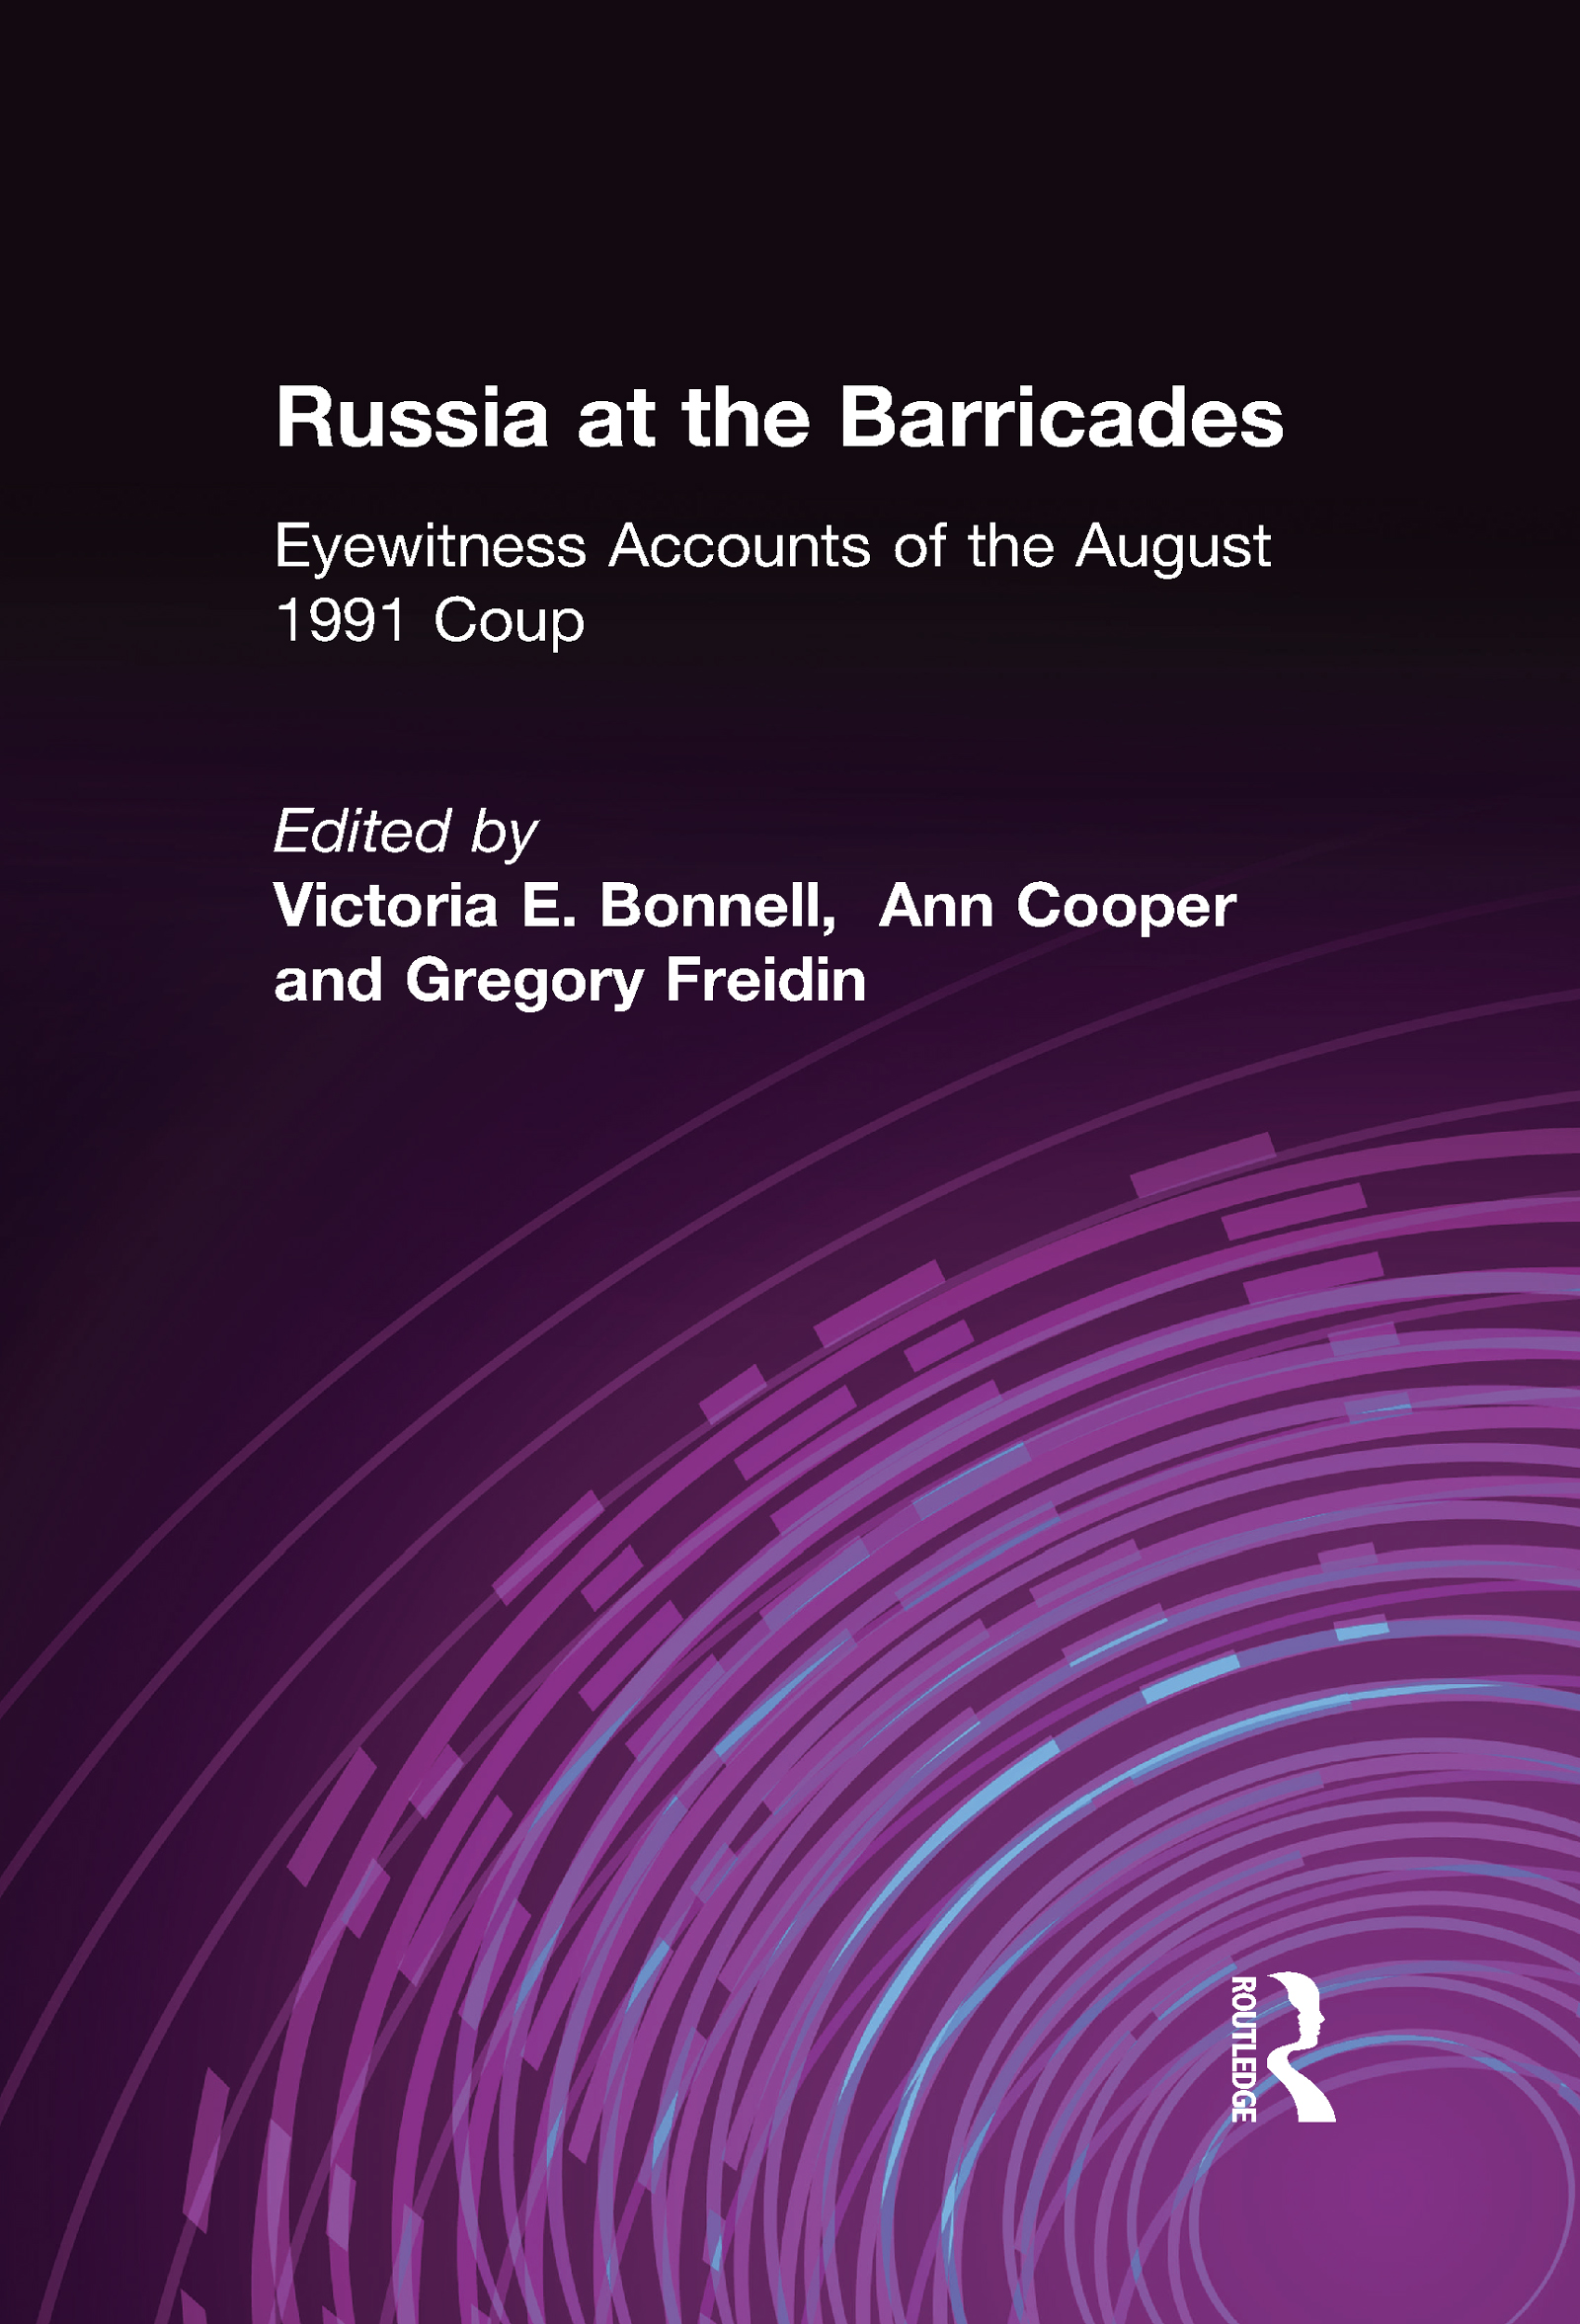 Russia at the Barricades: Eyewitness Accounts of the August 1991 Coup